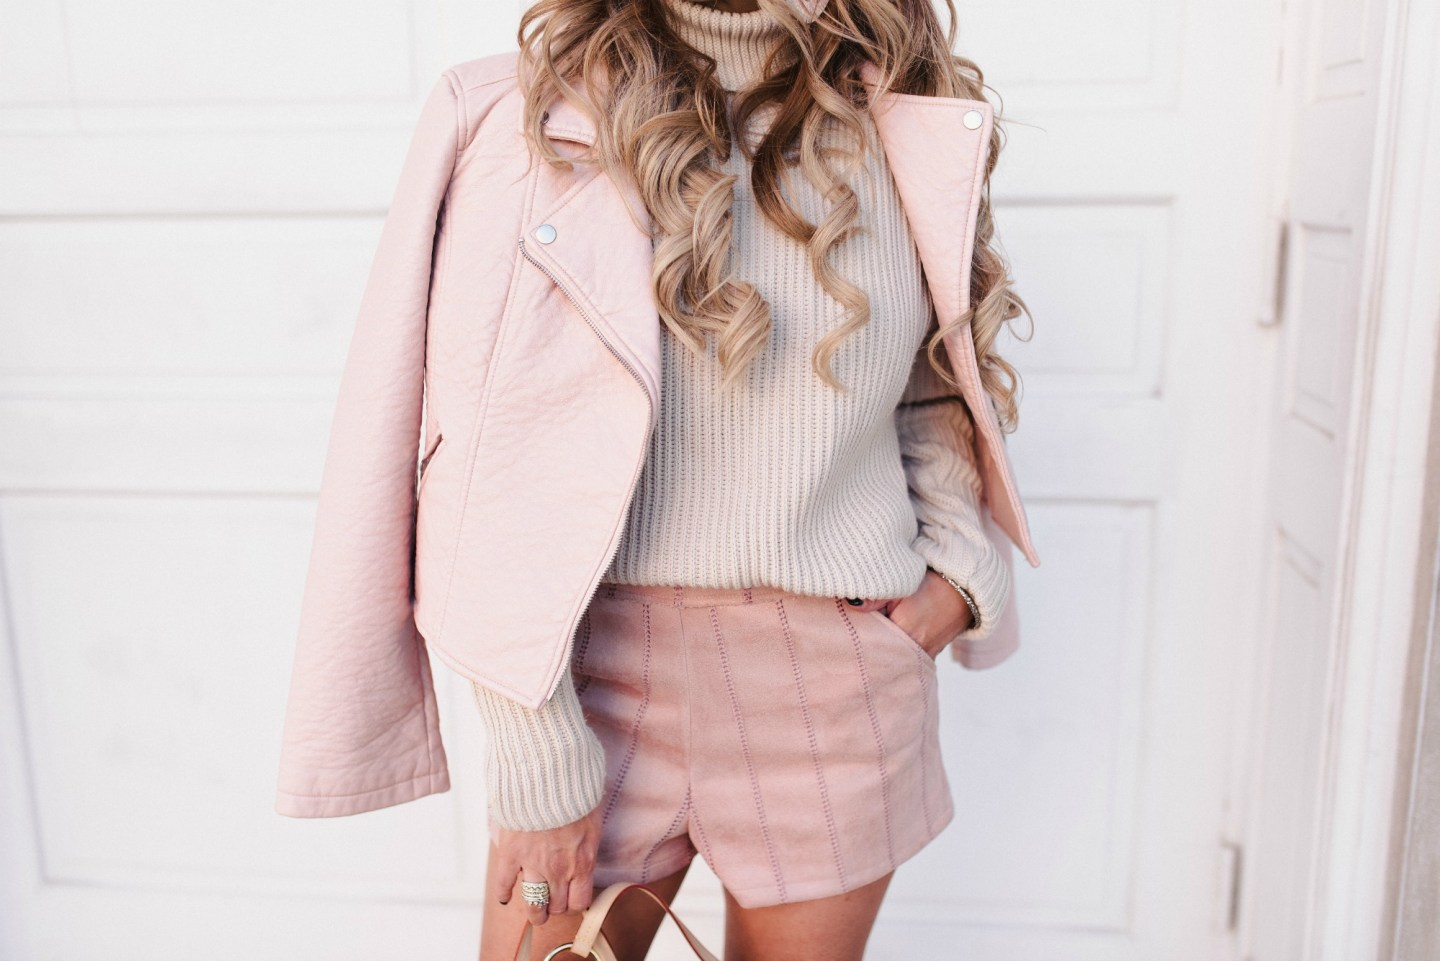 Blush Outfits for Spring Transition